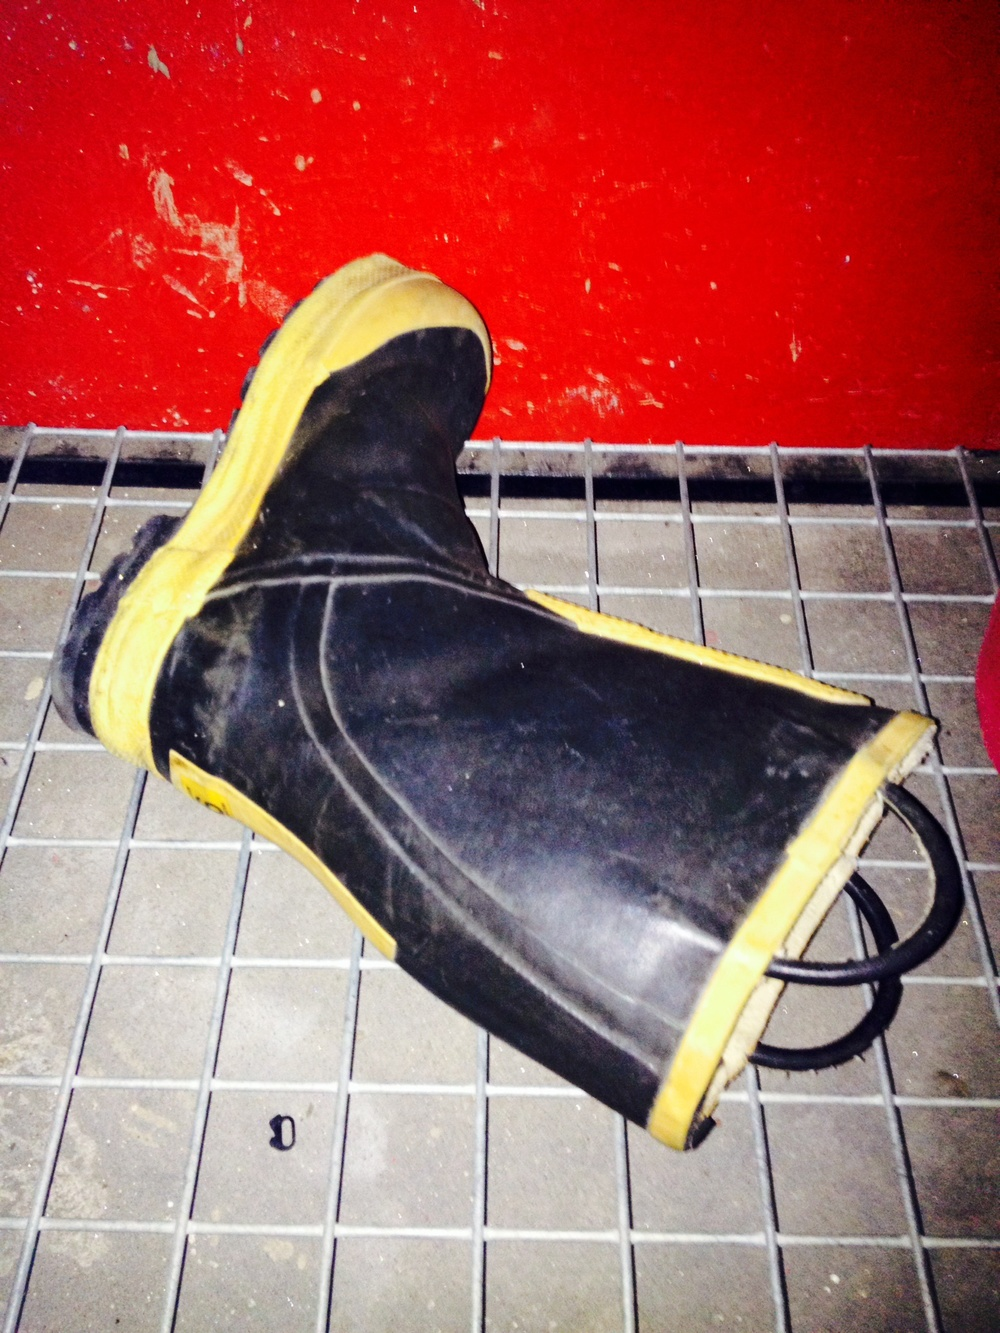 The Fireman's Boot that saved the camera shot with my iPhone.